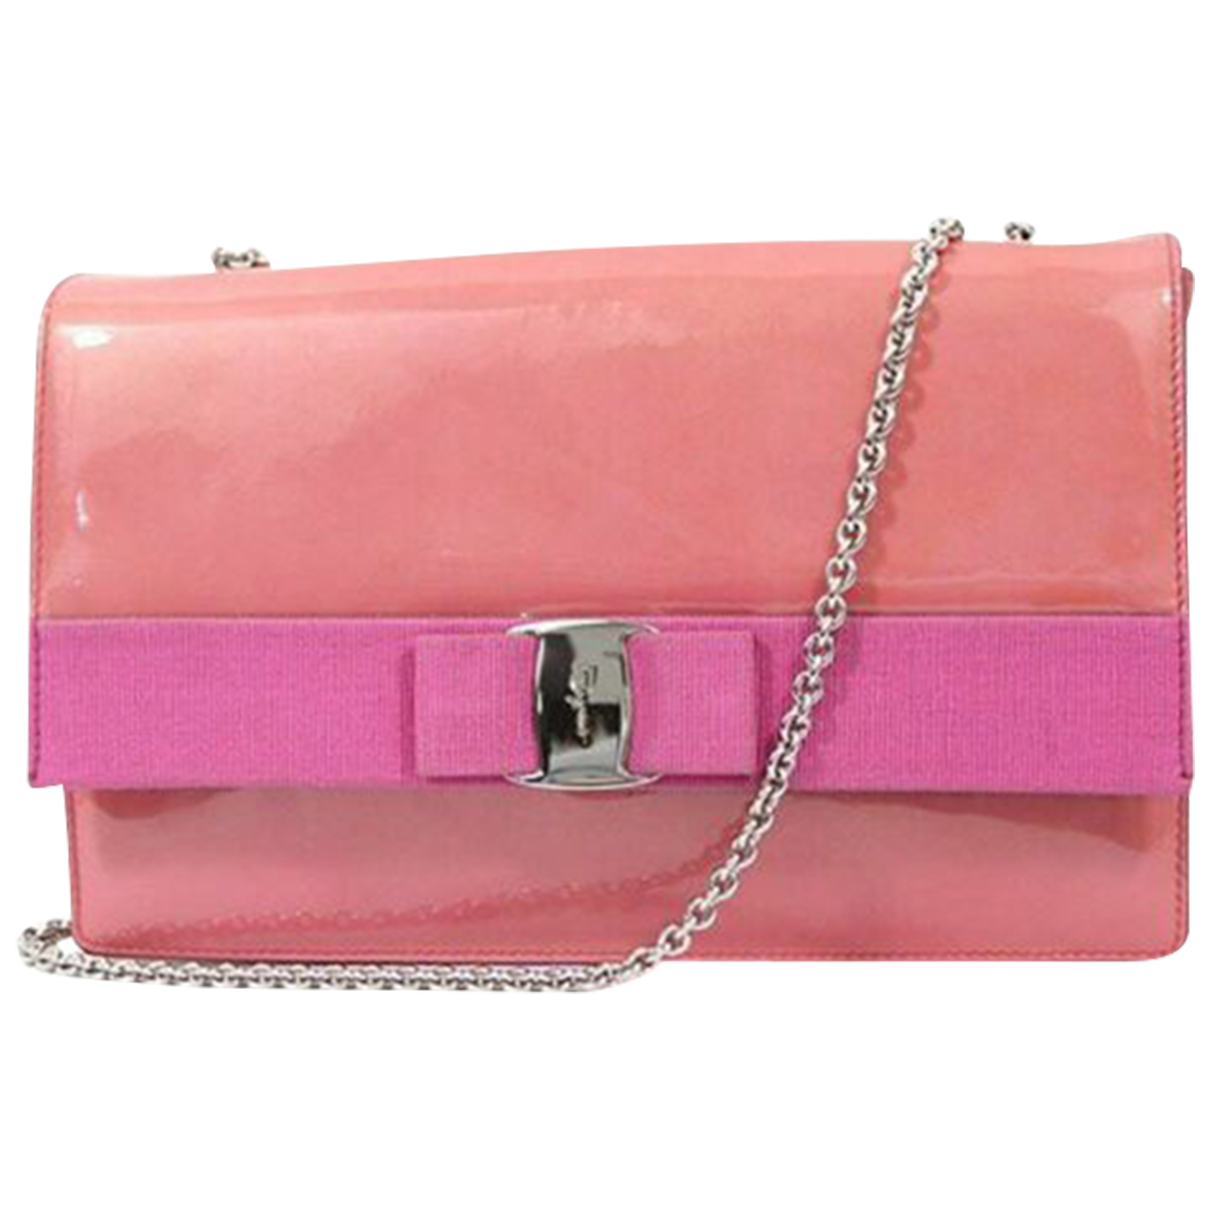 Salvatore Ferragamo \N Clutch in  Rosa Lackleder